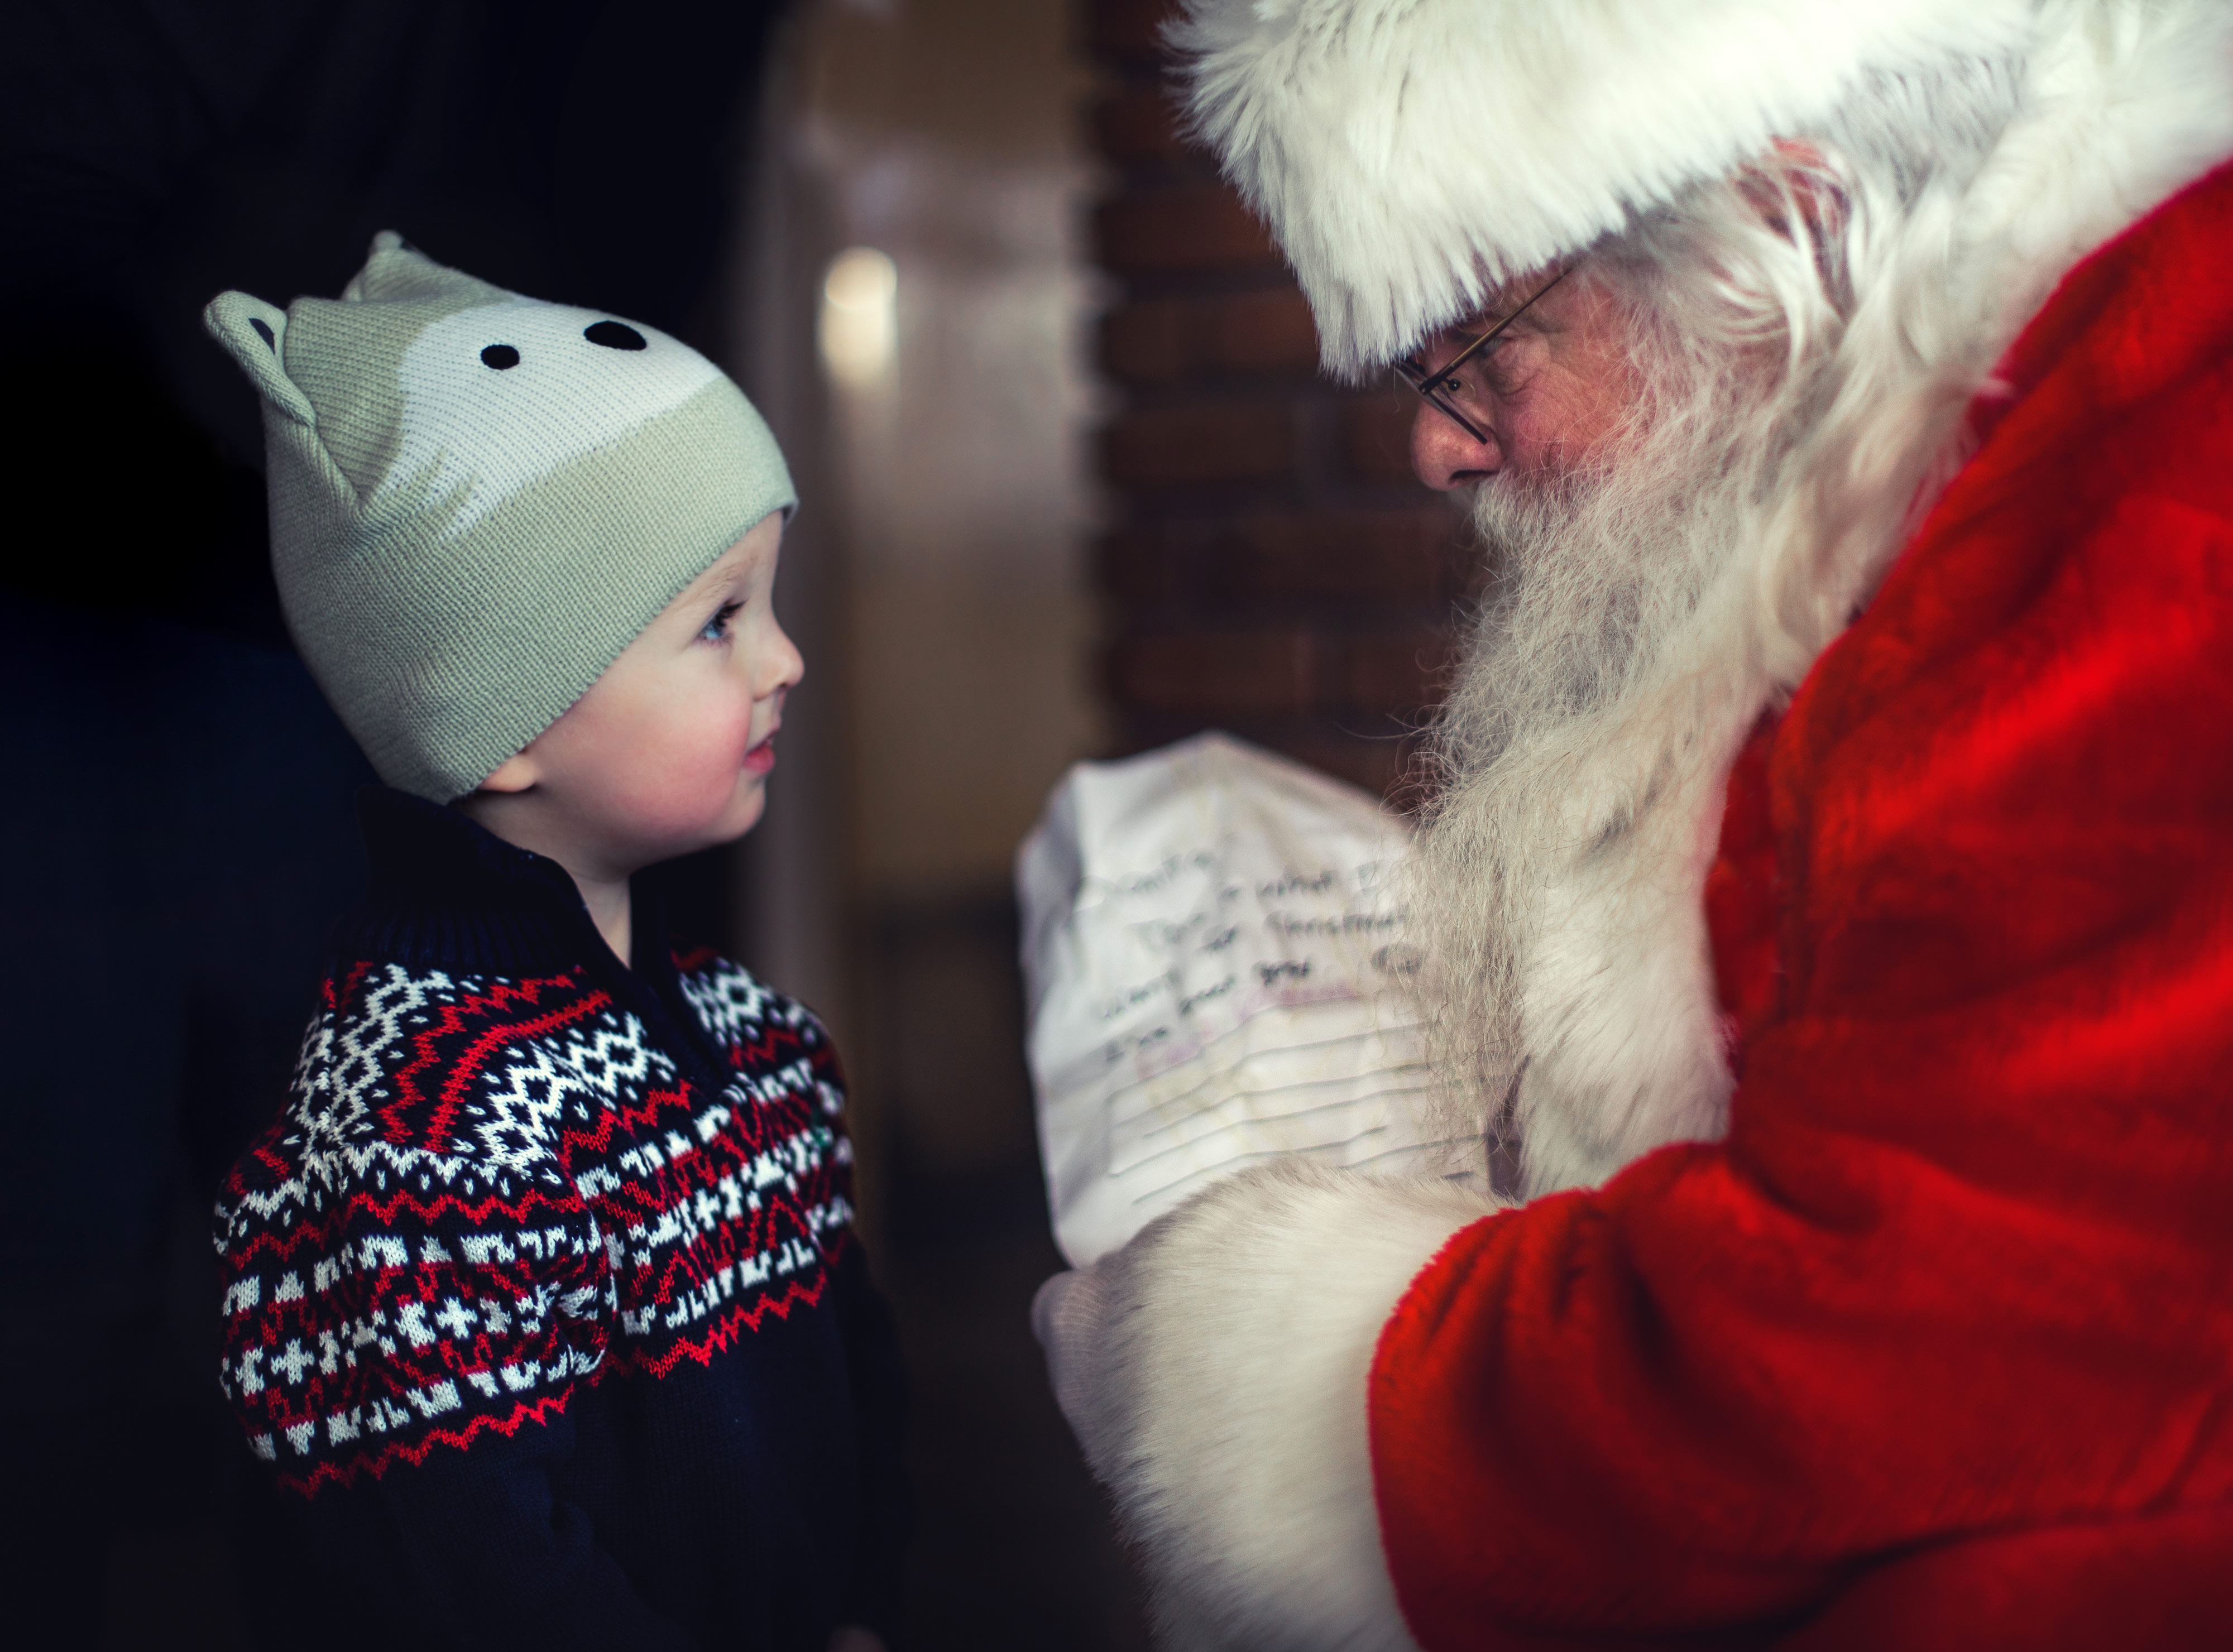 Santa Claus and Christmas traditions around the world - Australia Post